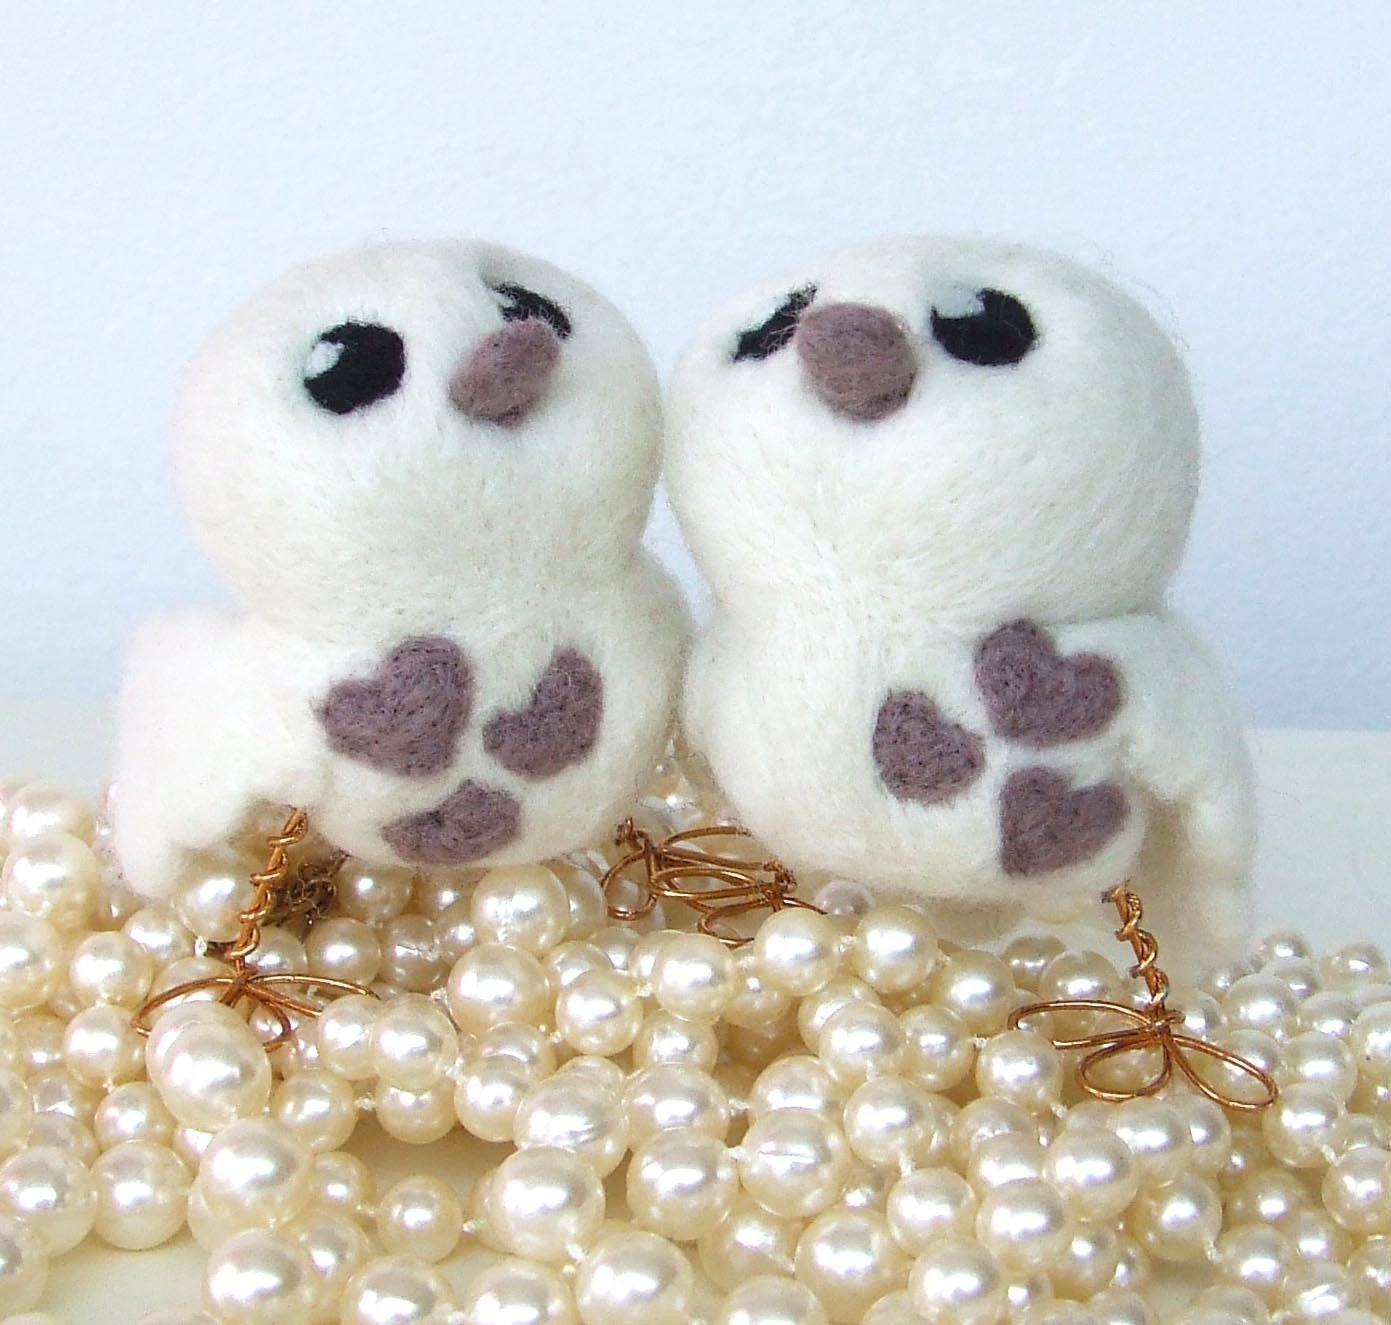 Make Mine Mink Natural White and Mink Love Birds Wedding Cake Topper